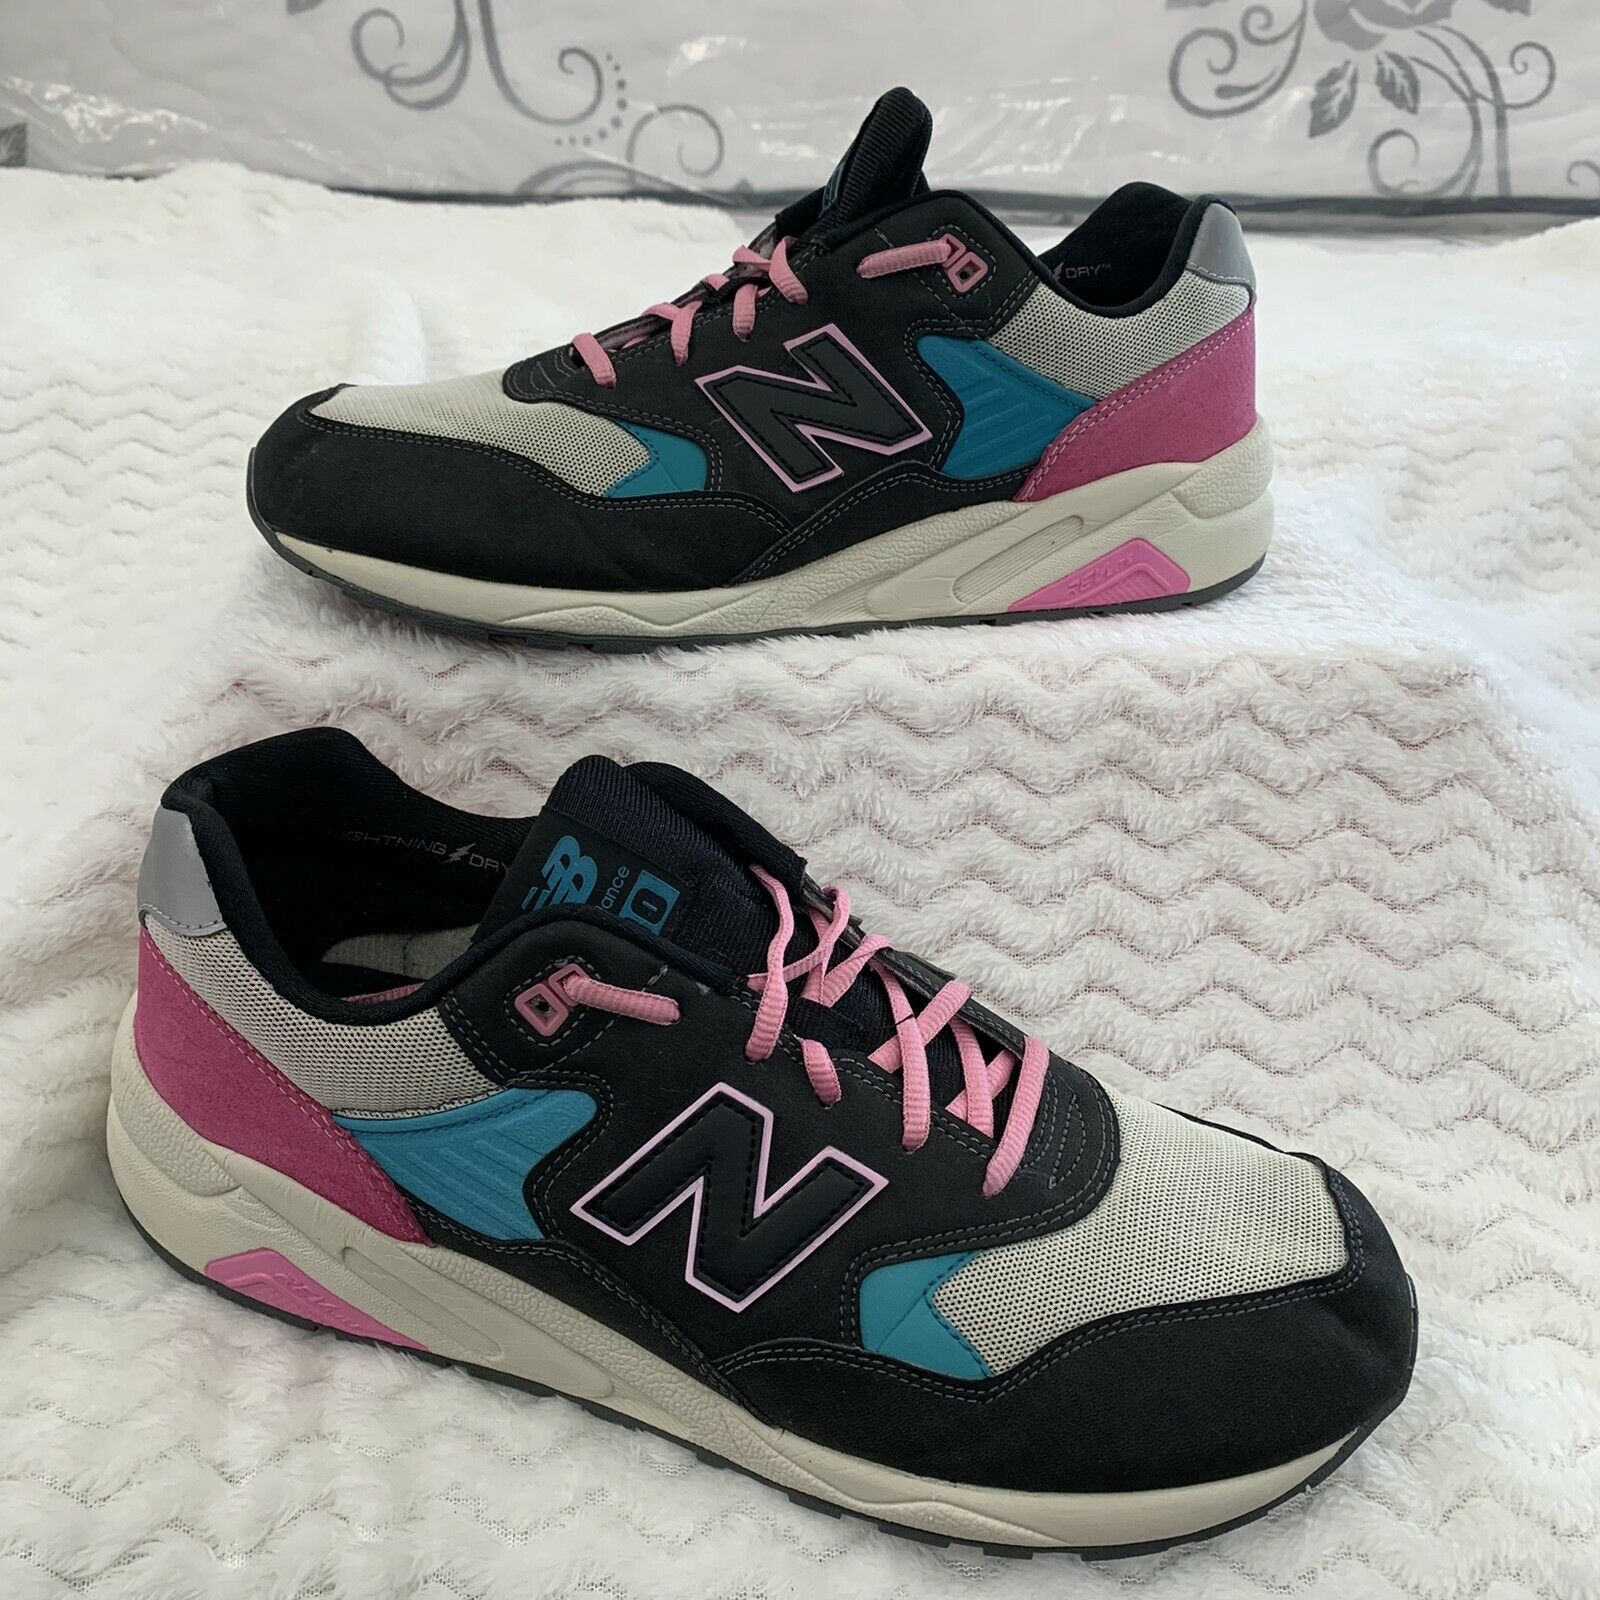 NEW BALANCE Mrt580Wb Low-Cut Sneakers 30cm Multi-Colored Polyester Size US 12